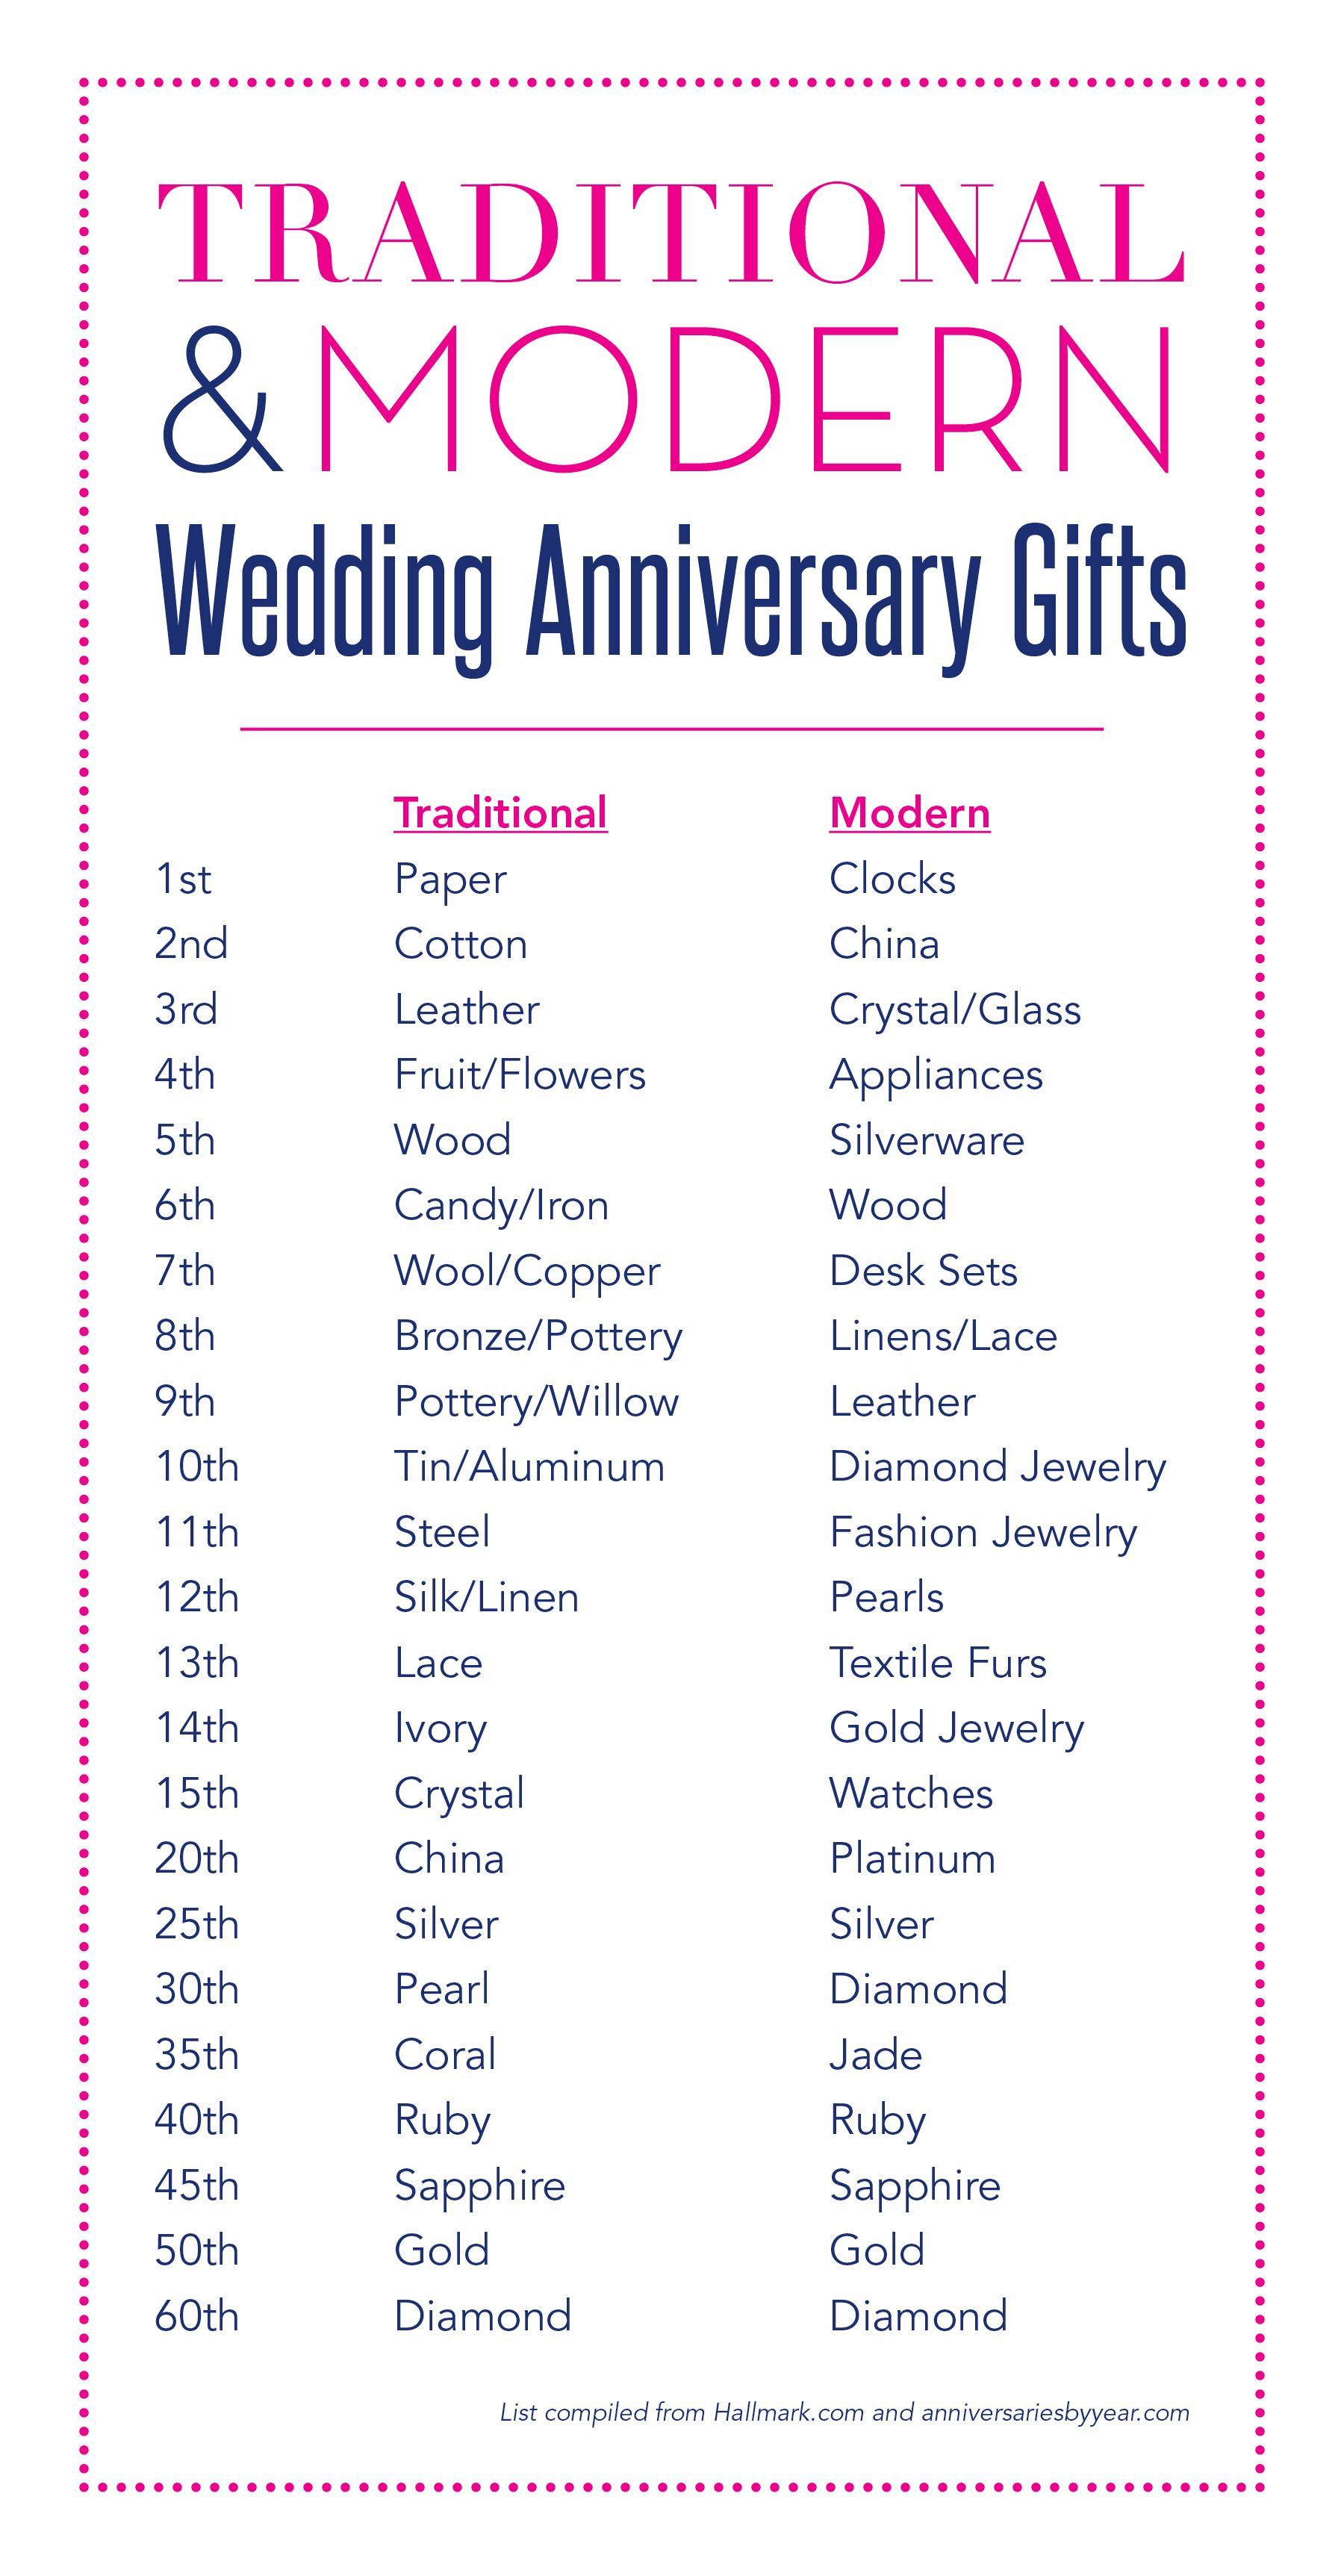 Wedding Anniversary Gifts Marriage anniversary, Year